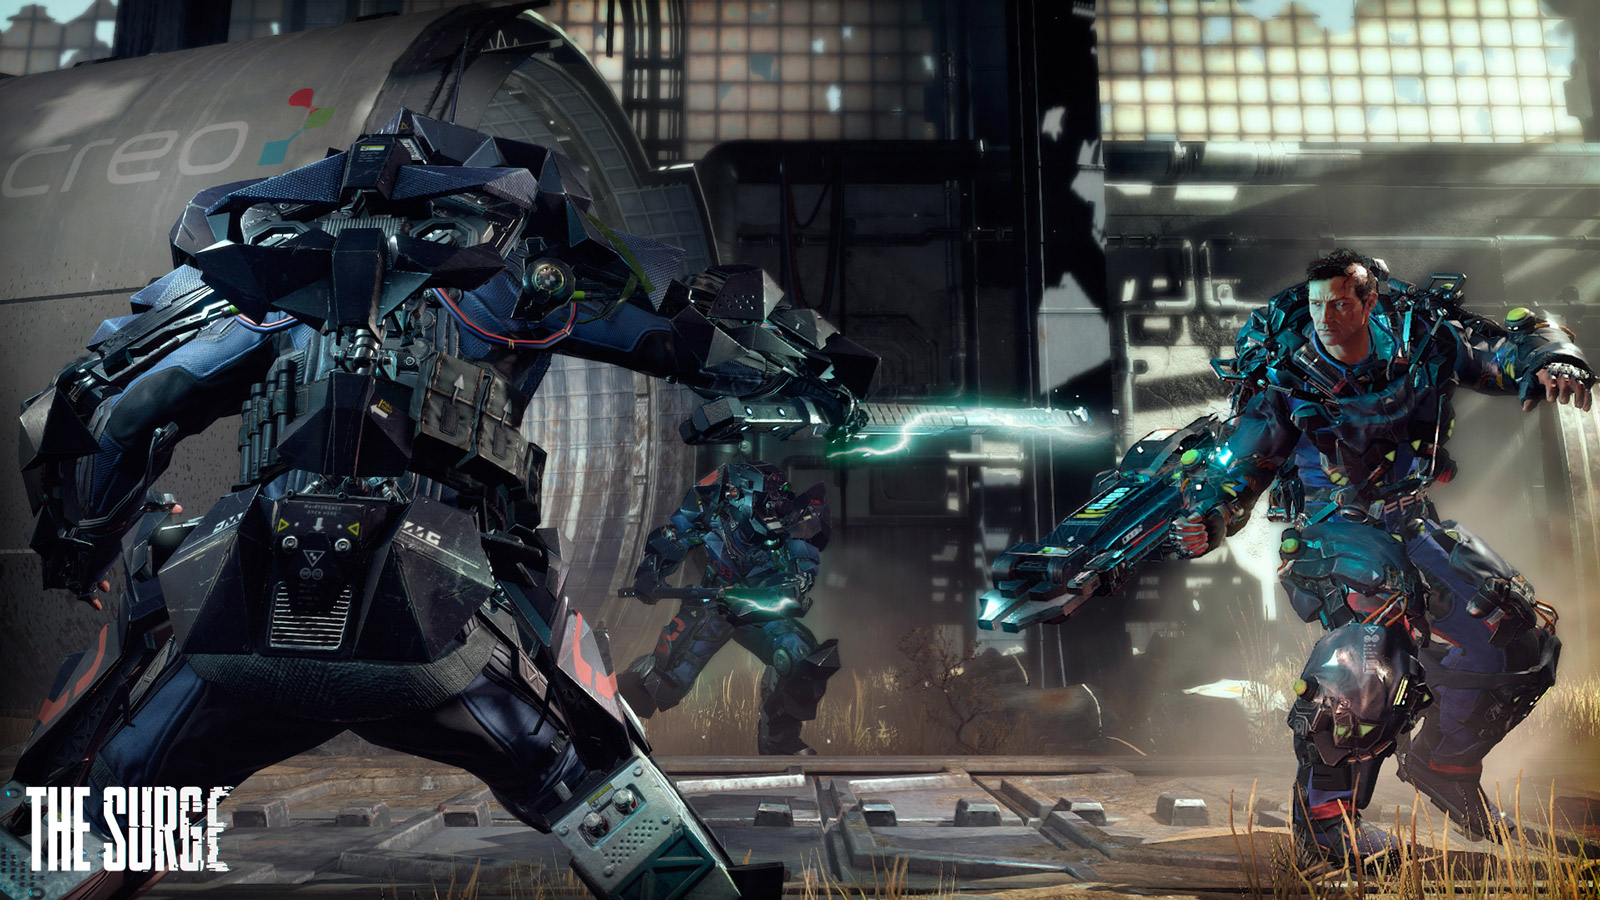 The Surge Wallpaper in 1600x900